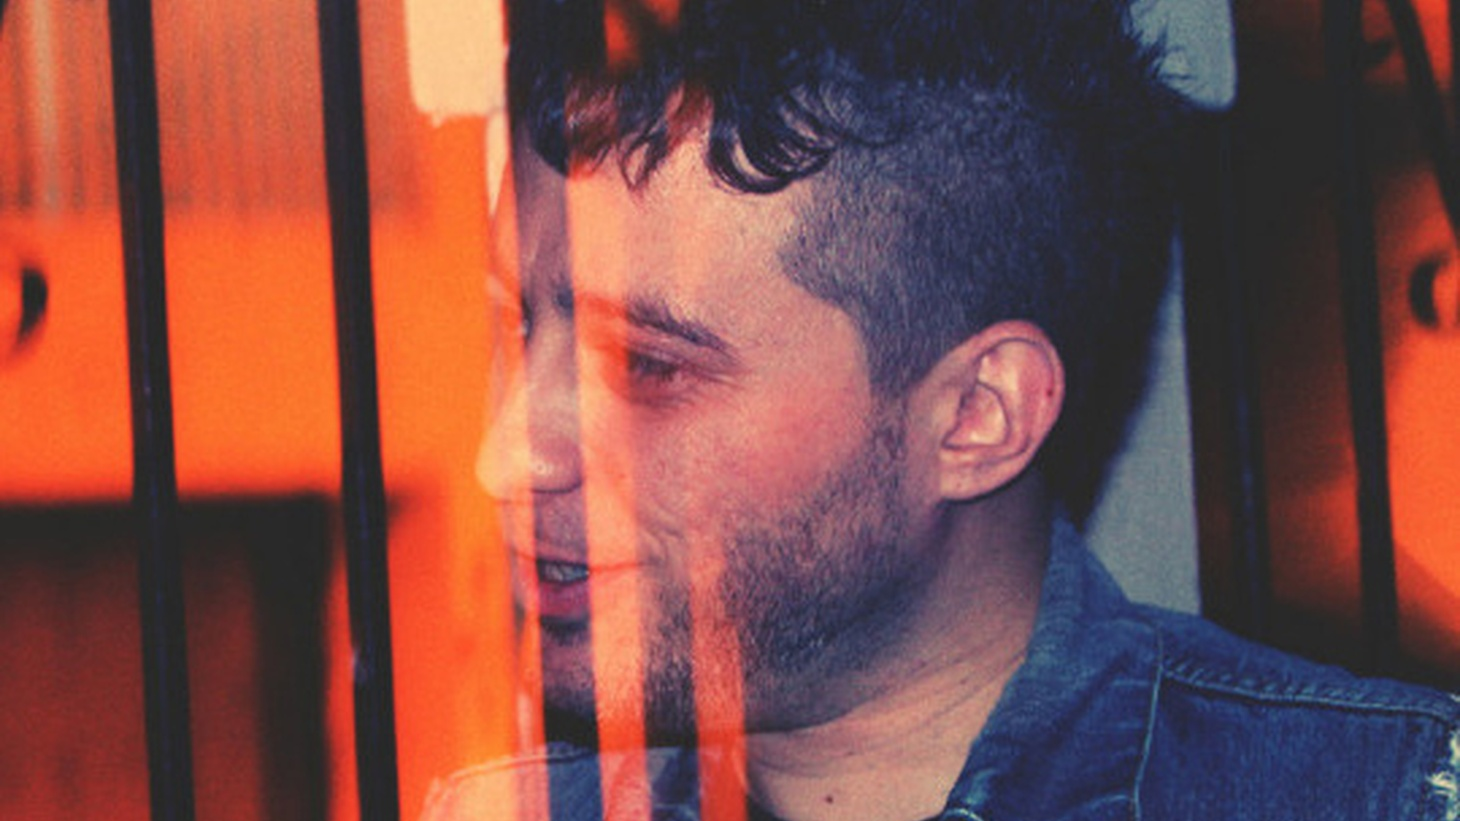 """Puerto Rico's AJ Davila makes his solo debut with infectious energy and the help of his friend Chilean artist Alex Anwandter on Today's Top Tune, """"Lo Que No Sera"""" (""""What Shall Not Be"""")."""